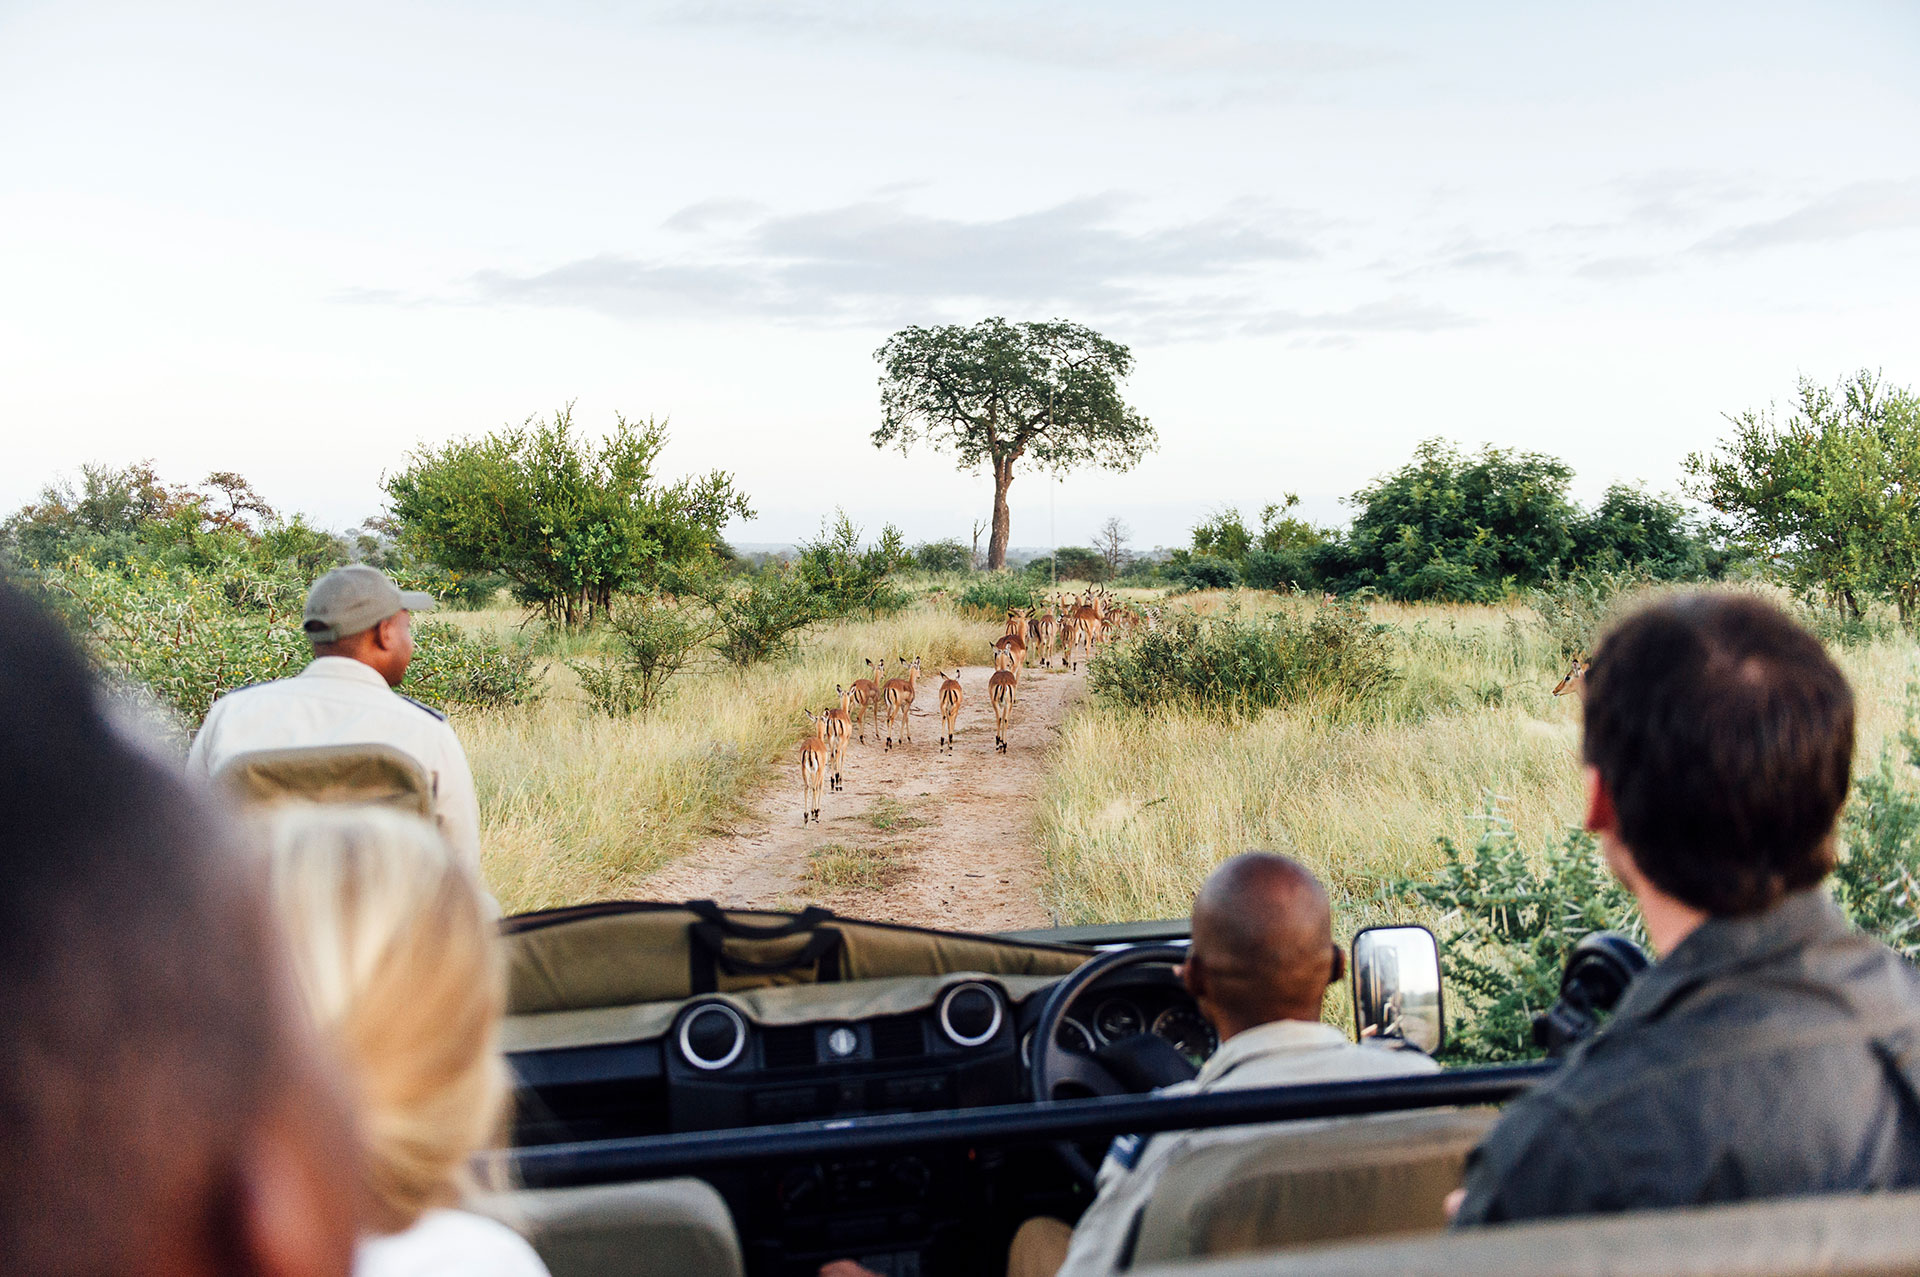 Tanda Tula - game drive on safari in the Greater Kruger